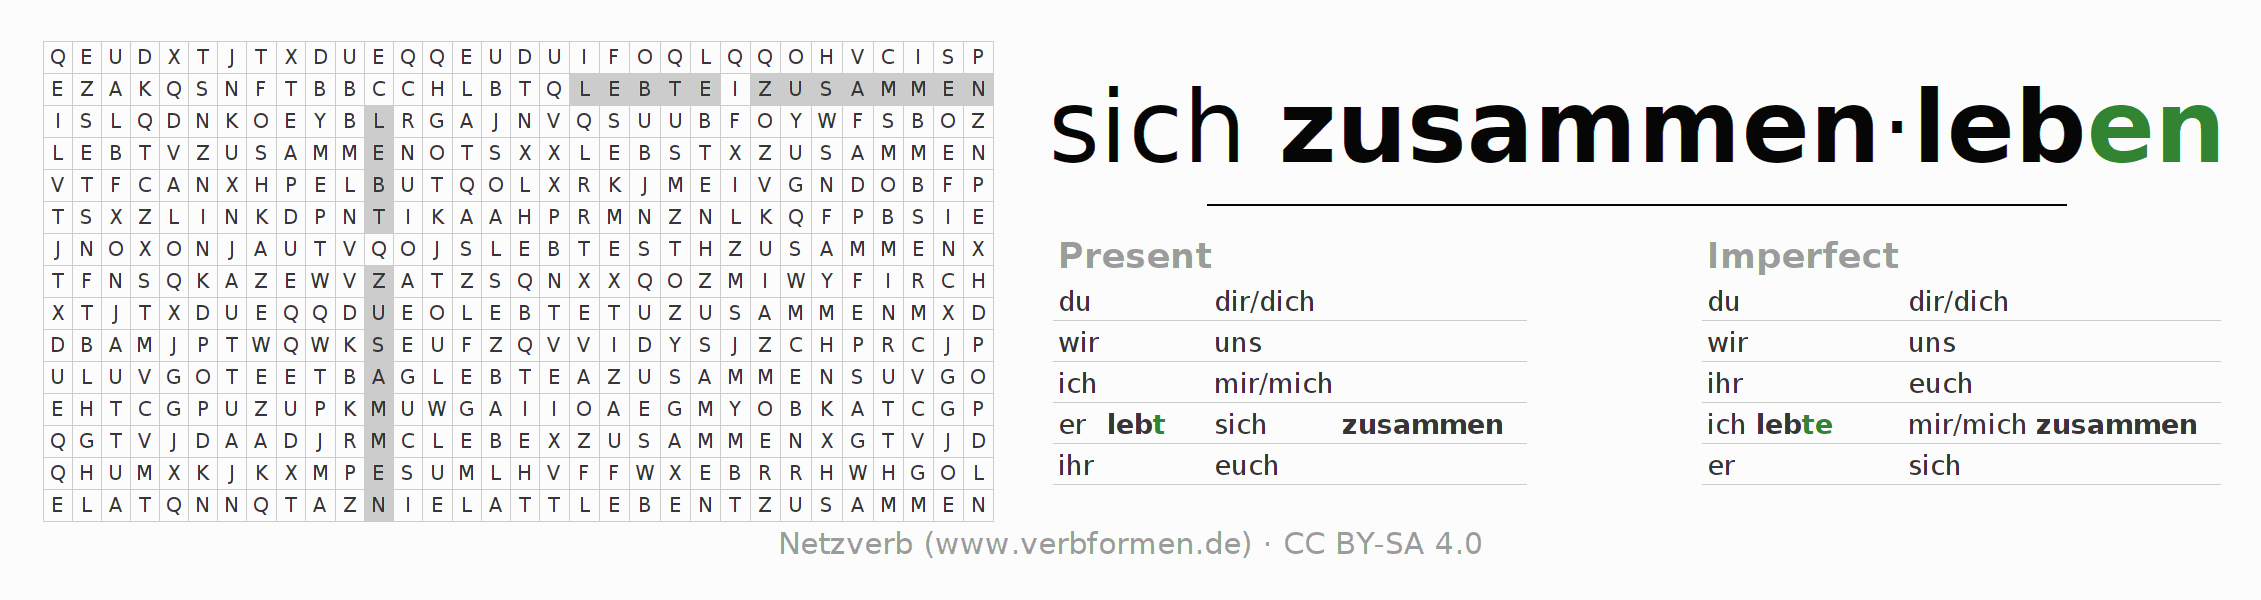 Word search puzzle for the conjugation of the verb sich zusammenleben